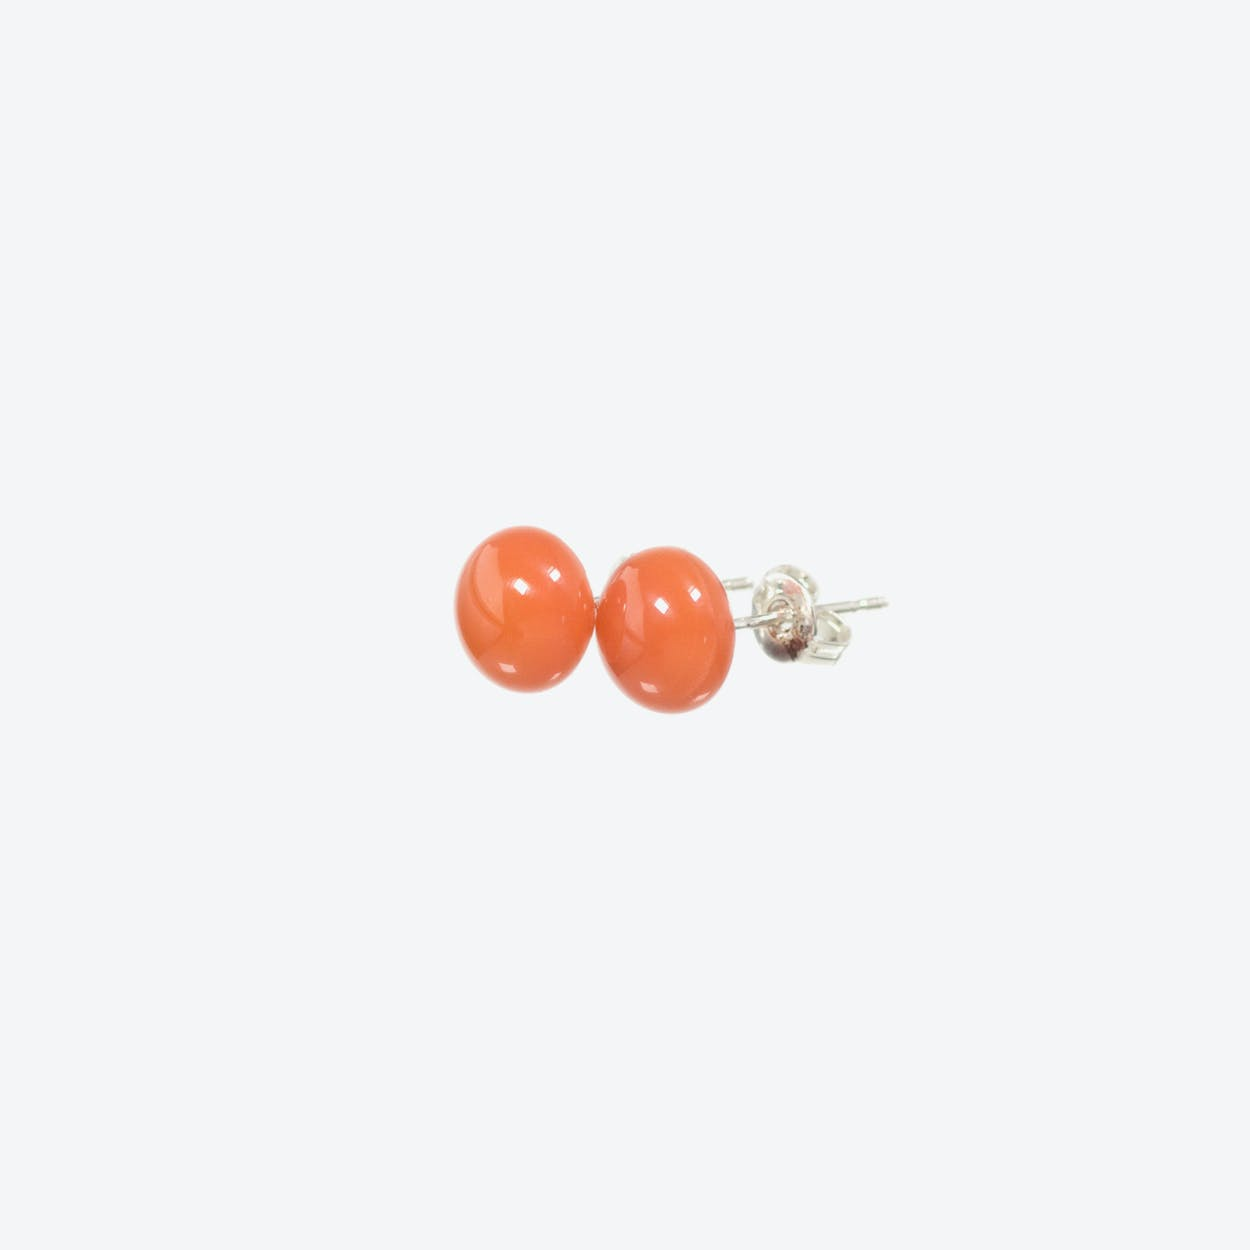 Confetti Earrings in Salmon Pink